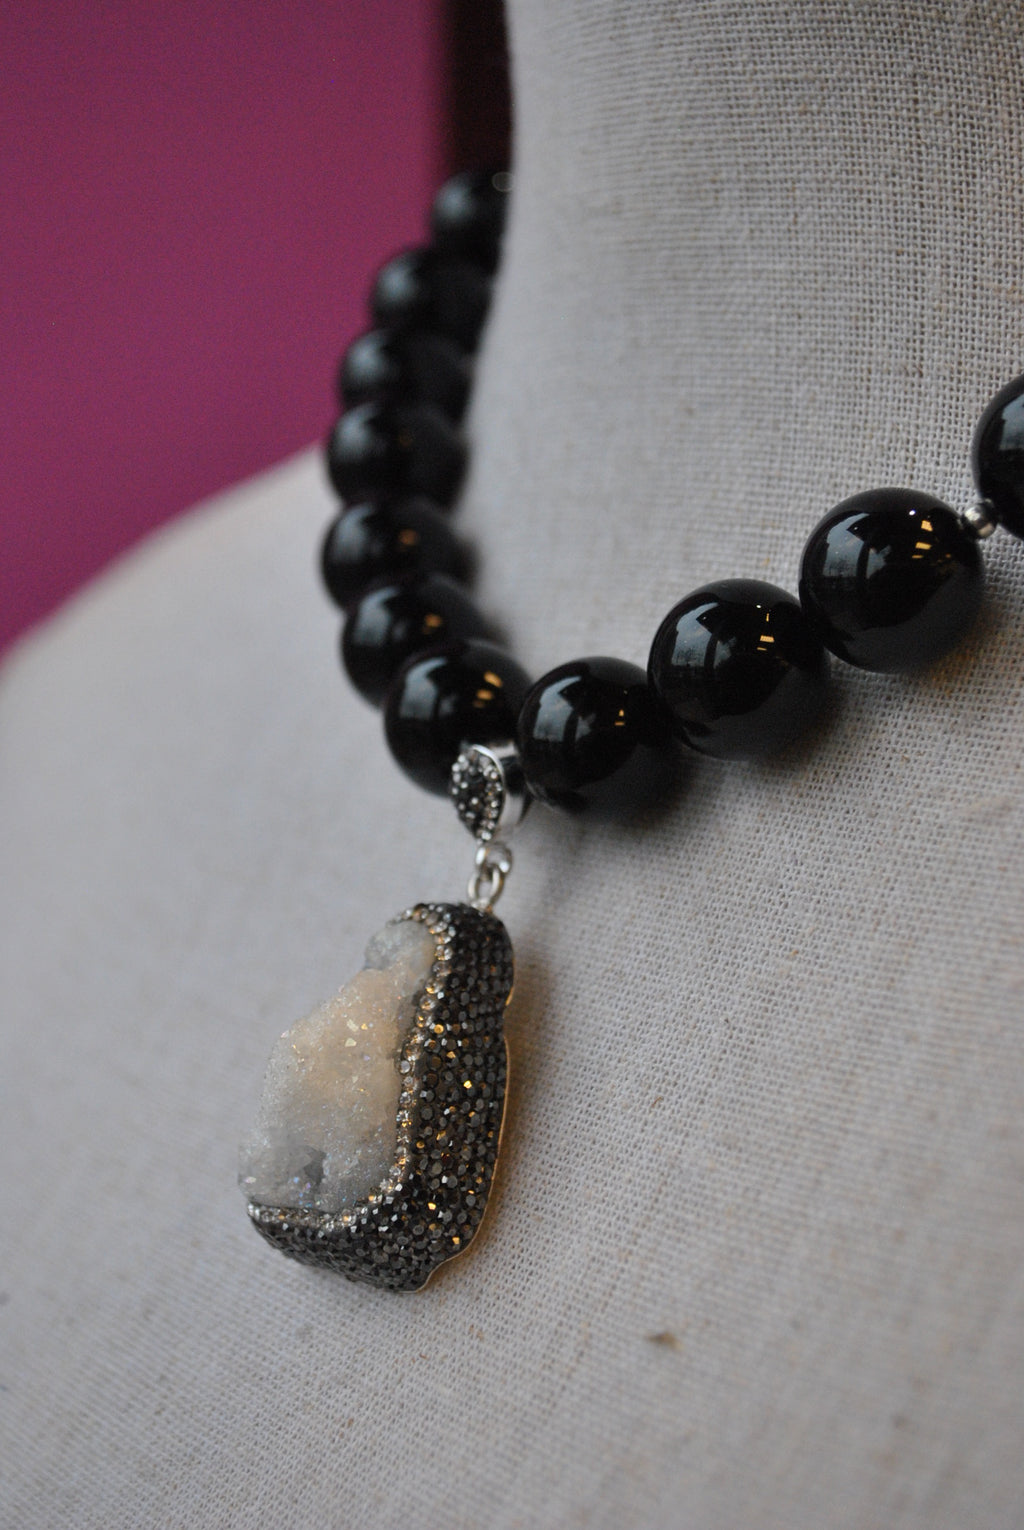 BLACK ONYX ROUND STONES AND DRUZY WITH SWAROVSKI CRYSTALS NECKLACE